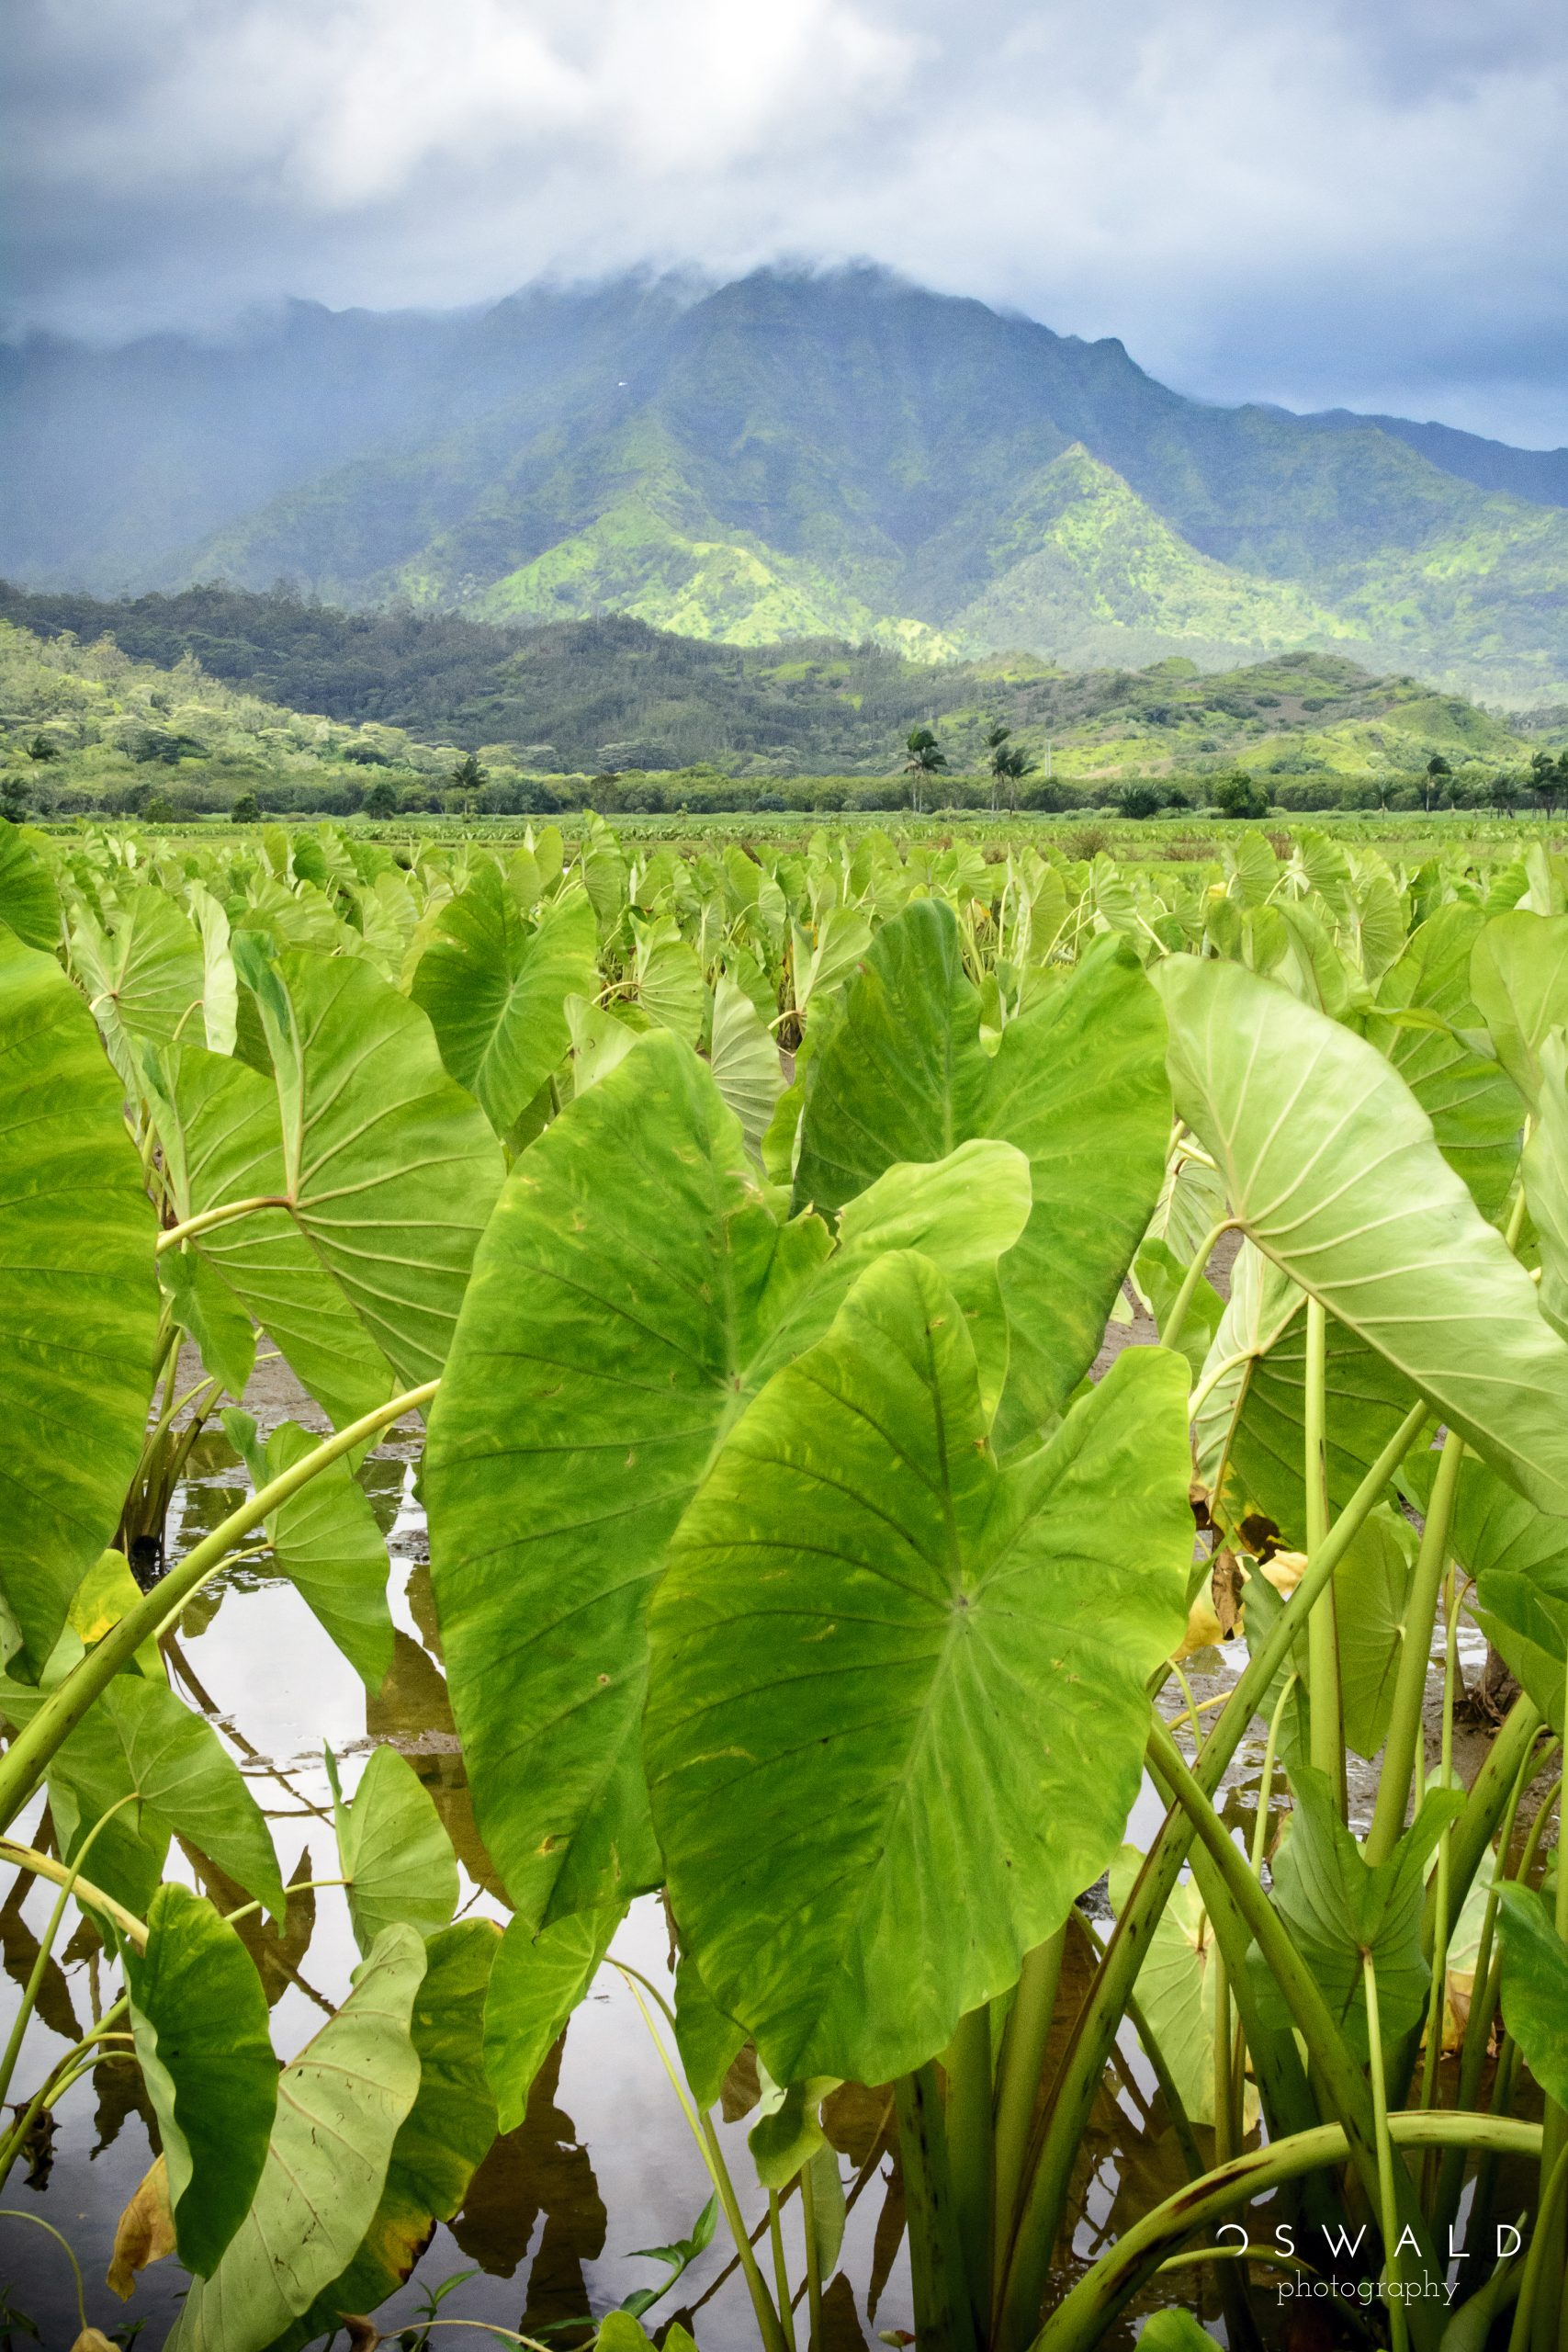 A closeup photograph of lush taro root foliage with moody Kauai mountain landscape in the background.